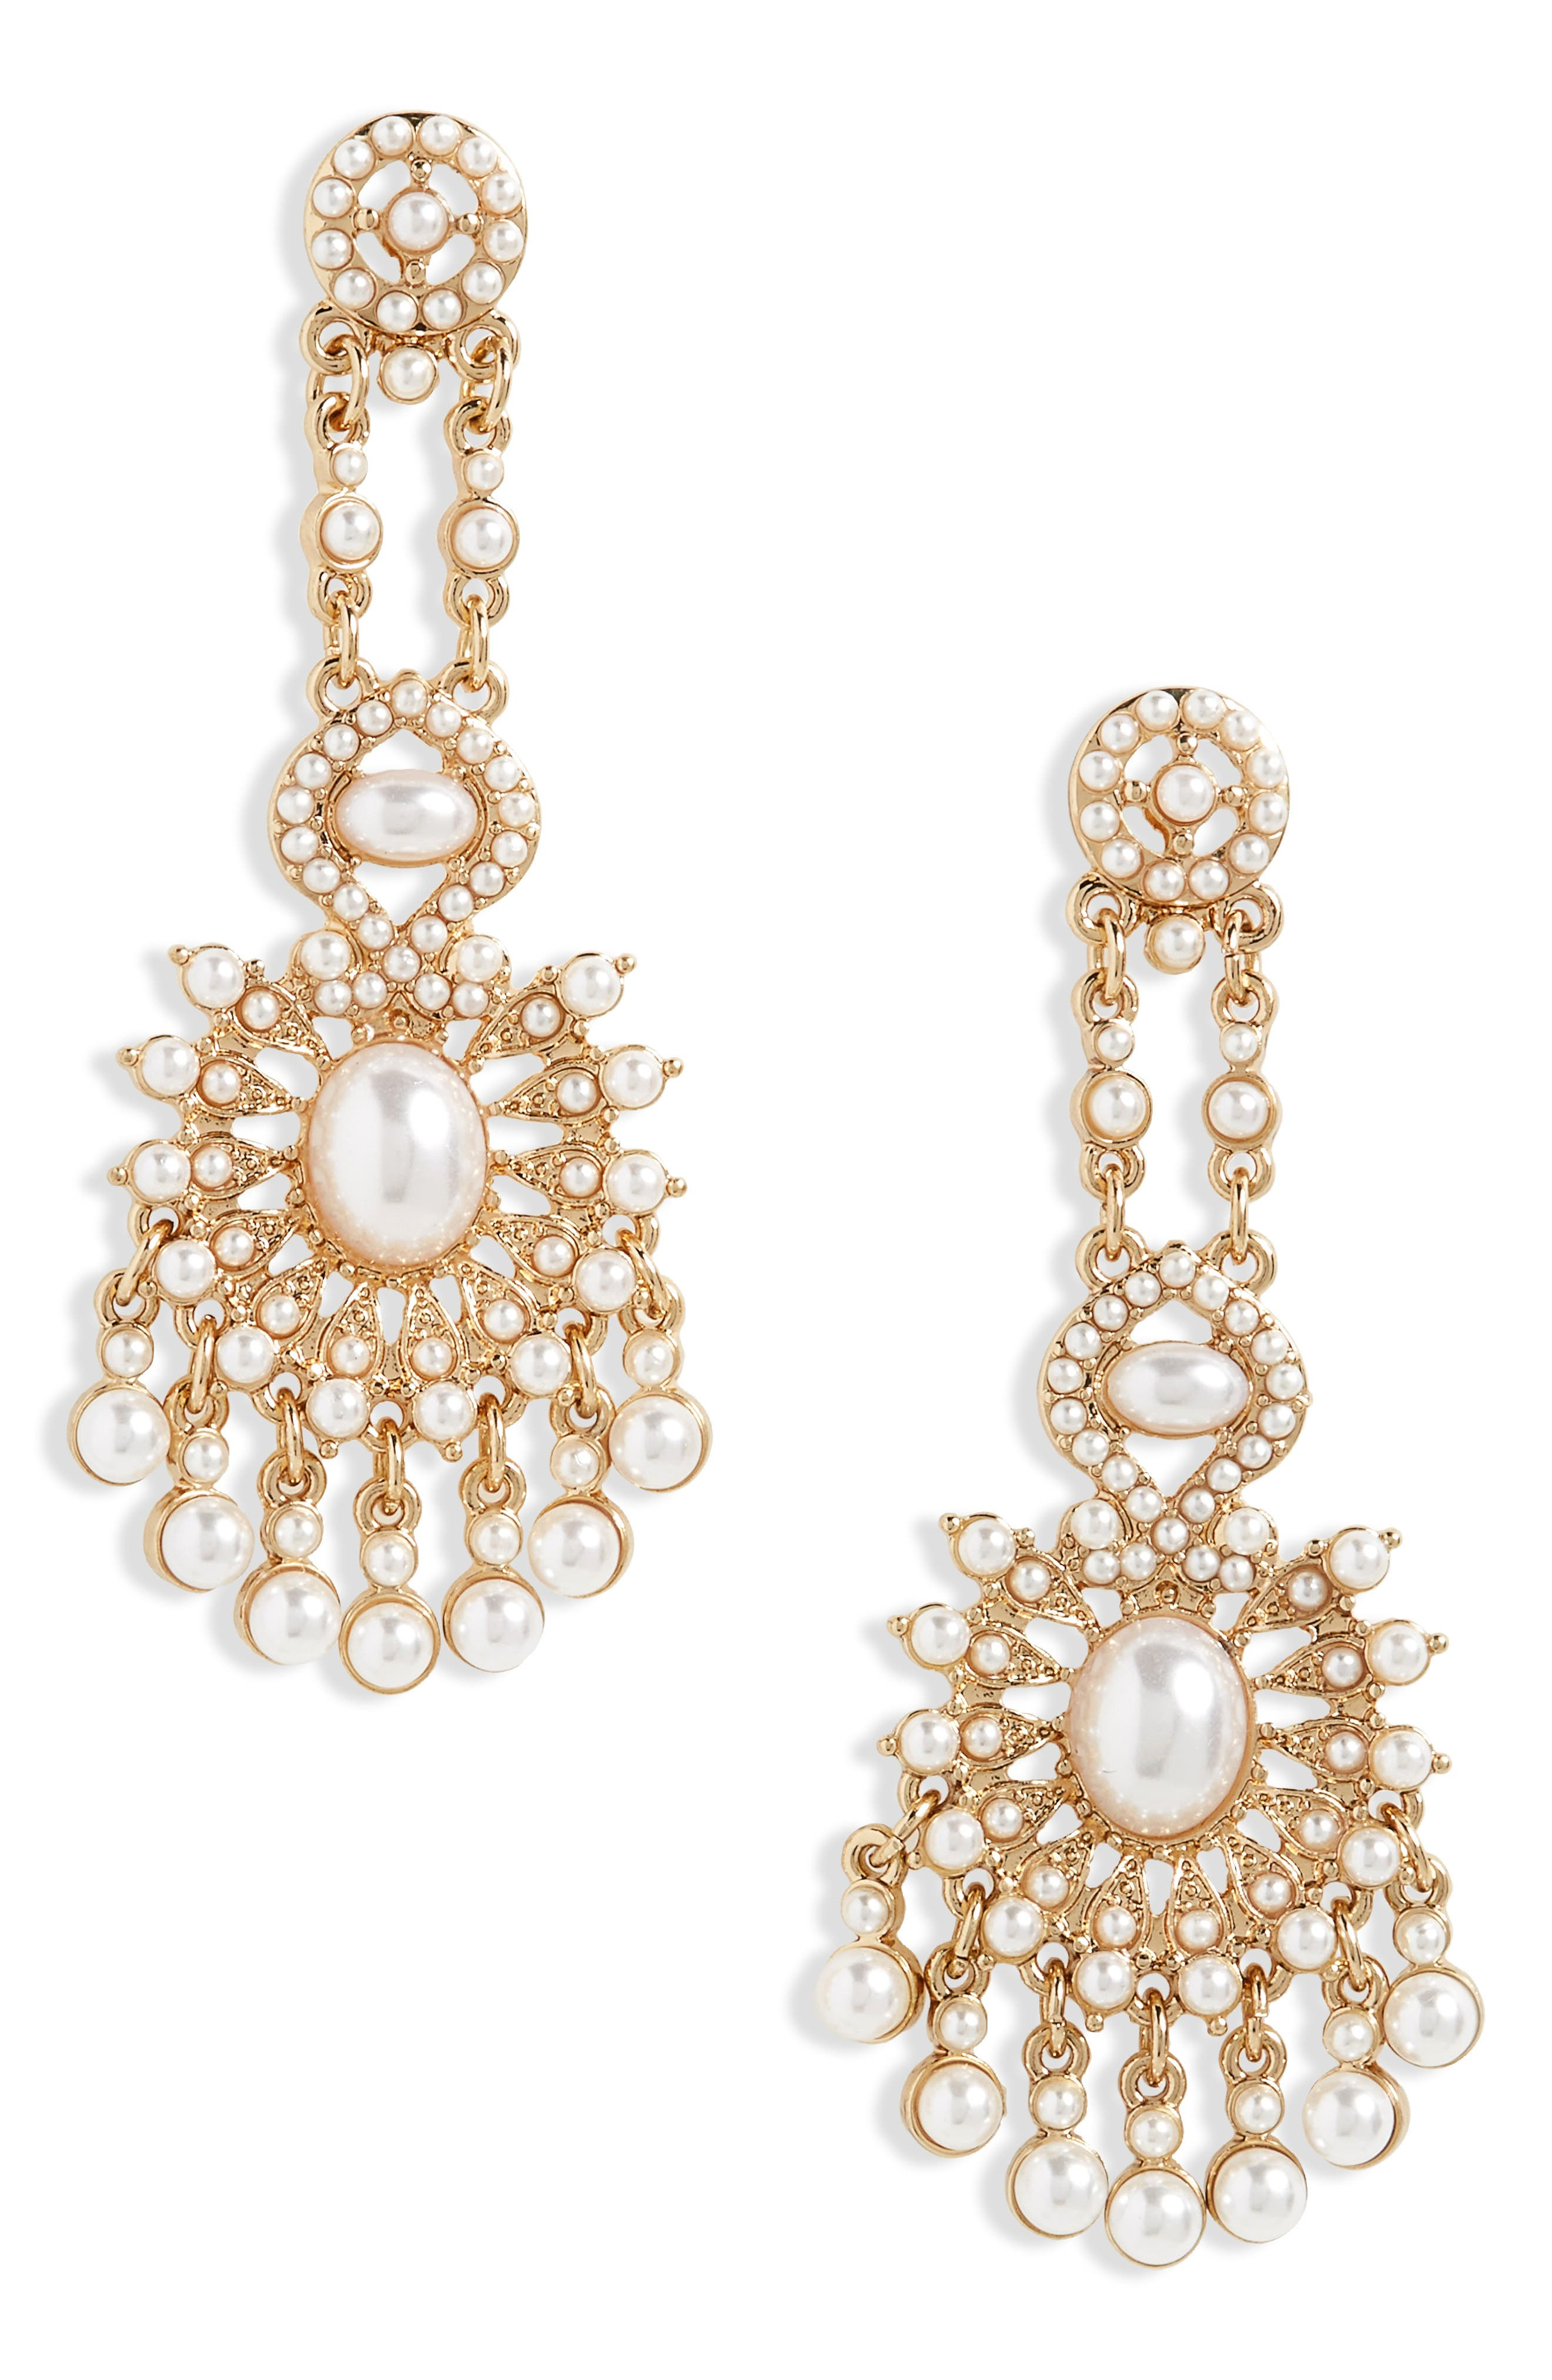 Imitation Pearl Chandelier Earrings,                         Main,                         color, Gold